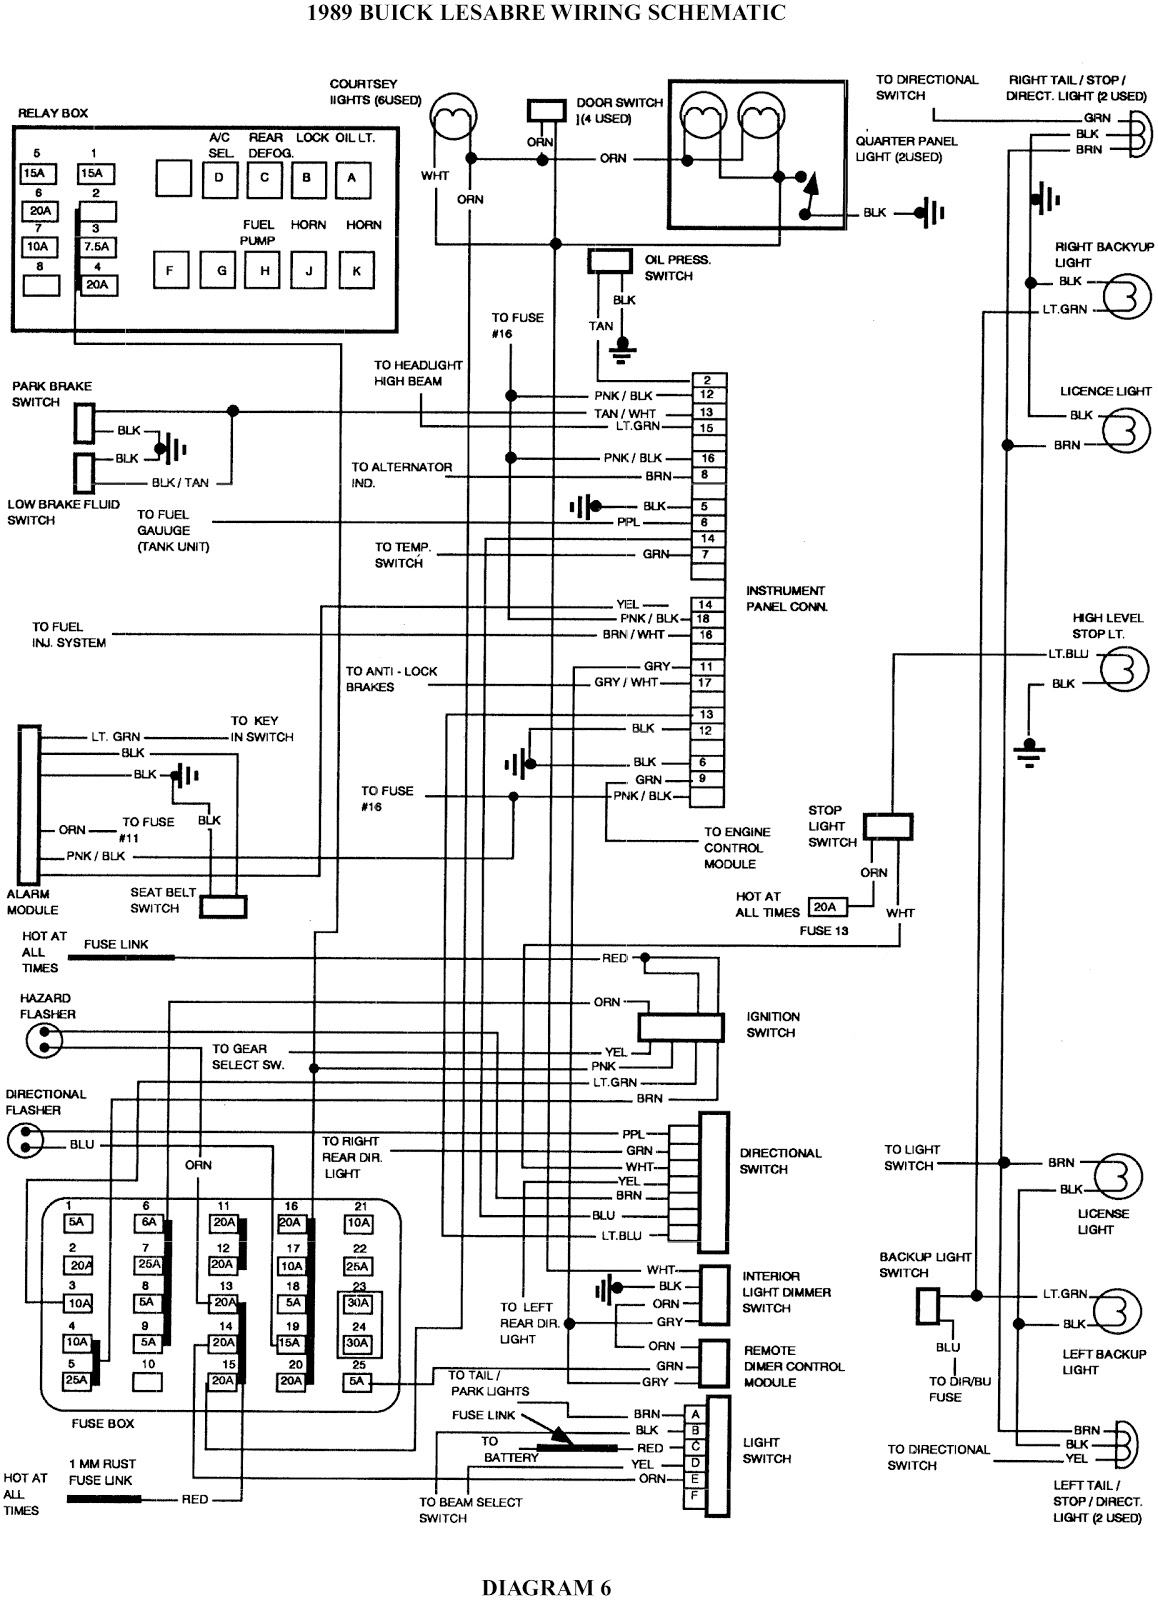 2004 buick regal fuse box diagram 2003 buick regal fuse 1962 gm fuse box diagram fuse [ 1158 x 1600 Pixel ]